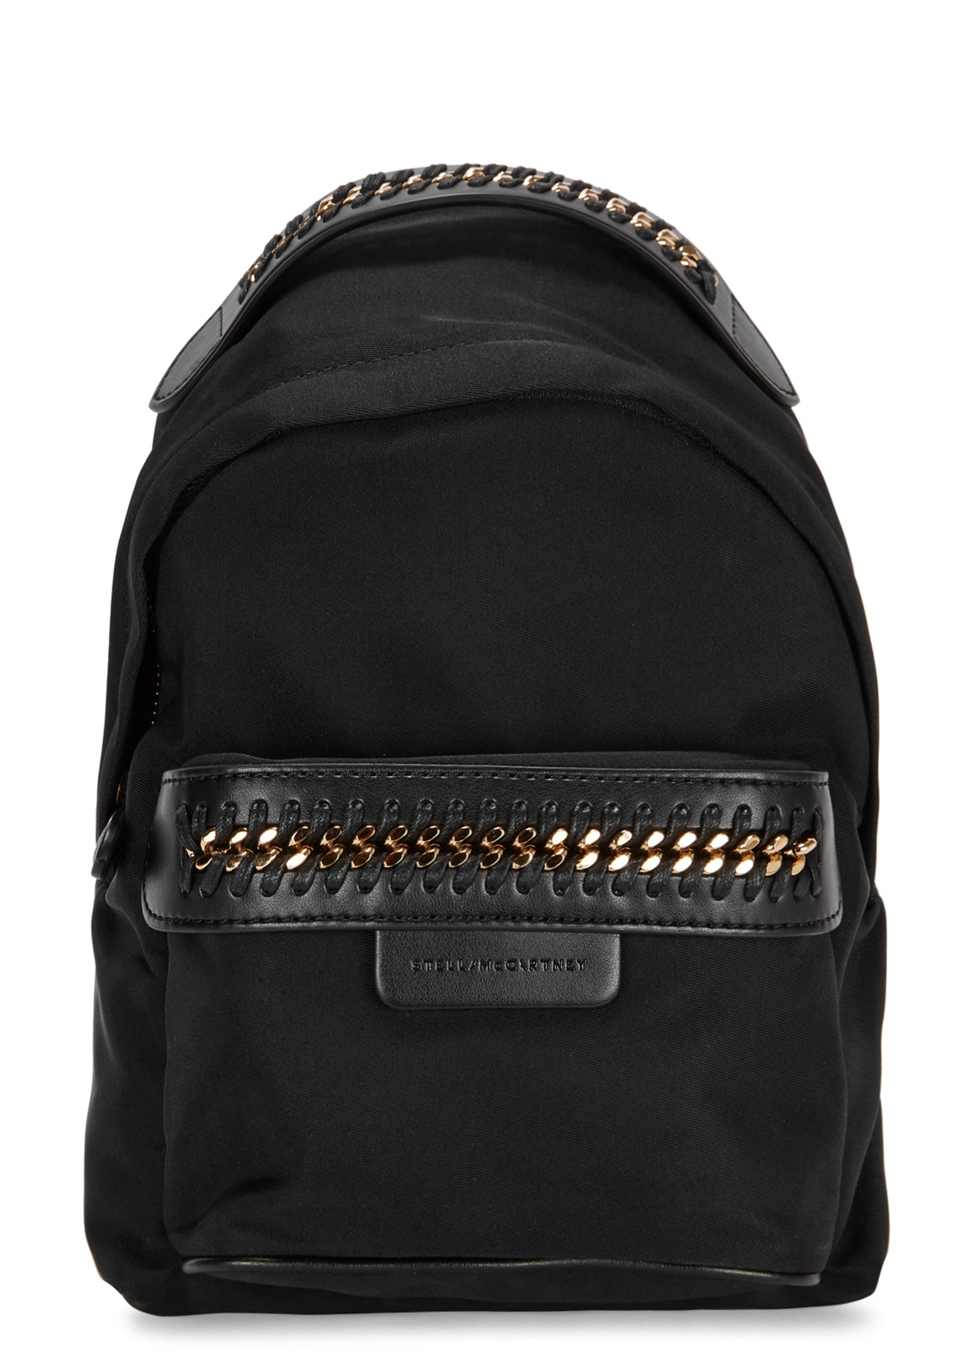 FALABELLA MINI NYLON BACKPACK